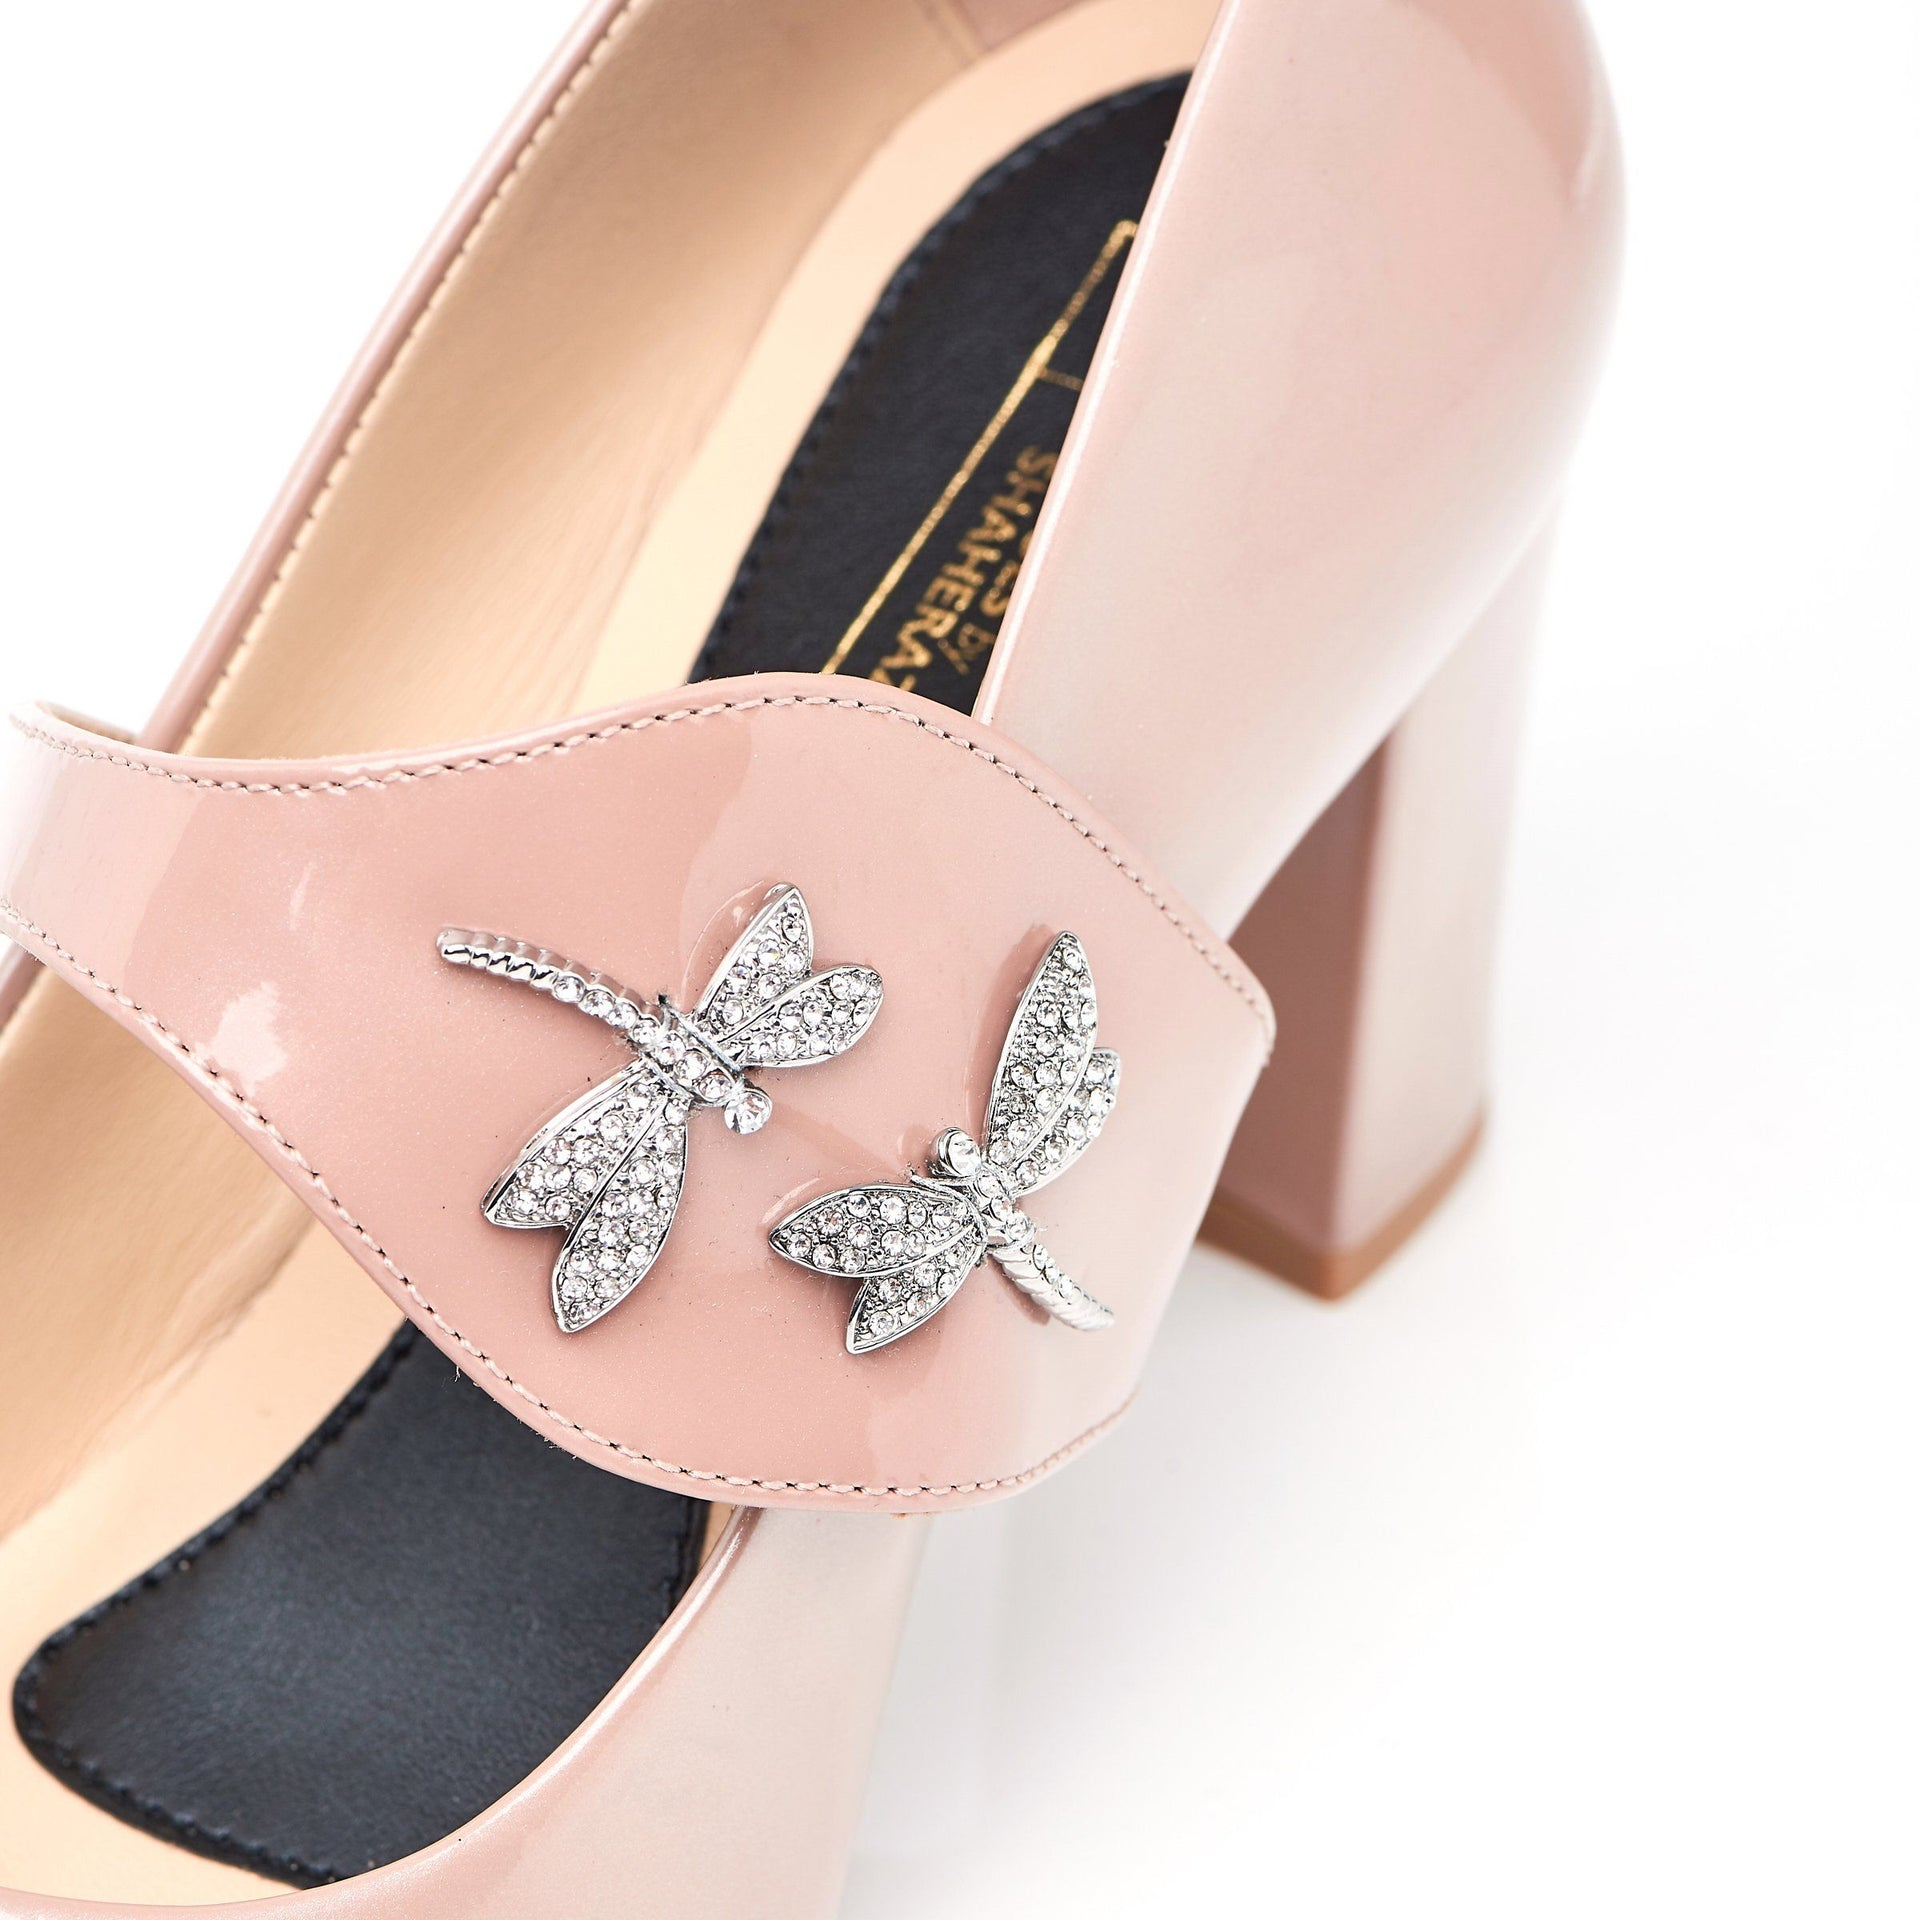 Dragonfly Nude patent block heels